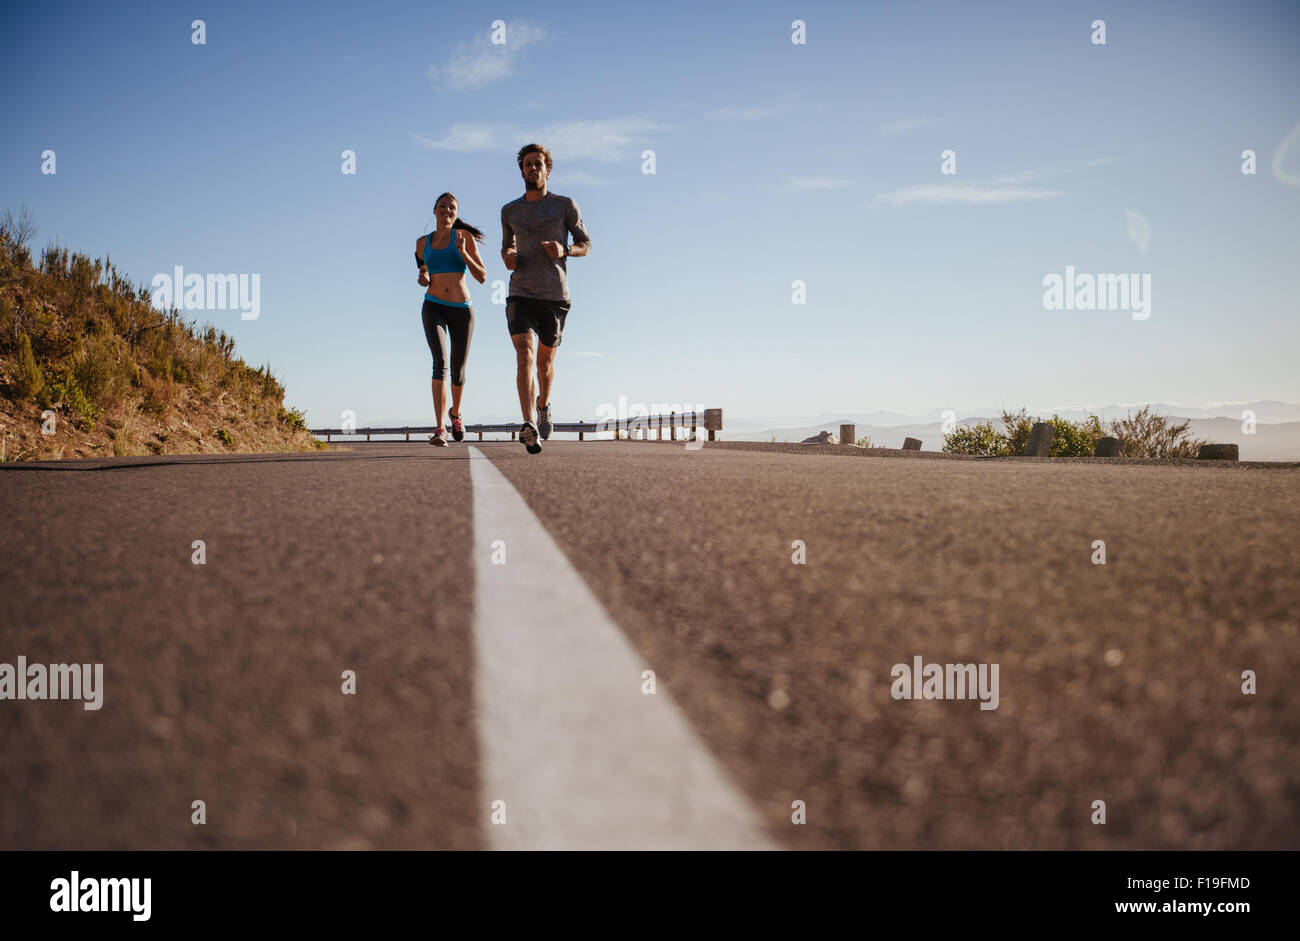 Two young people running on country road, low angle shot of runners on open road on  a summer day. - Stock Image